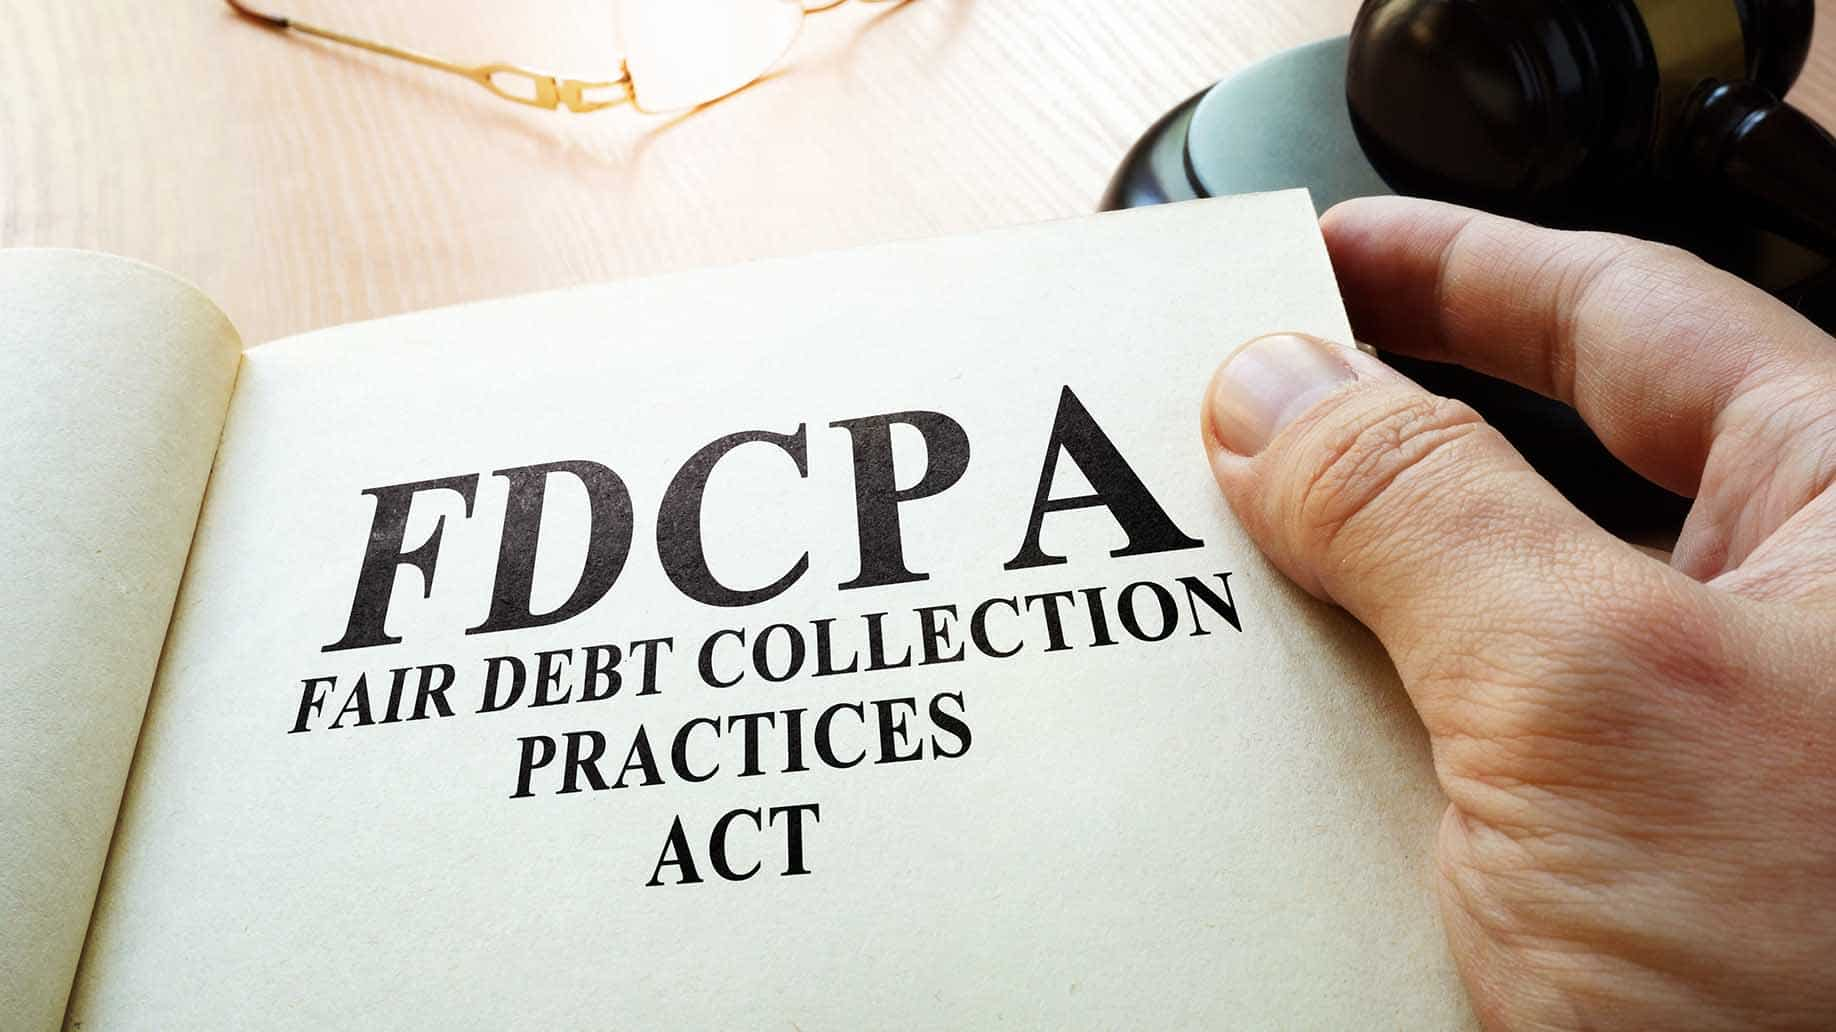 fair debt collection practices act fdcpa